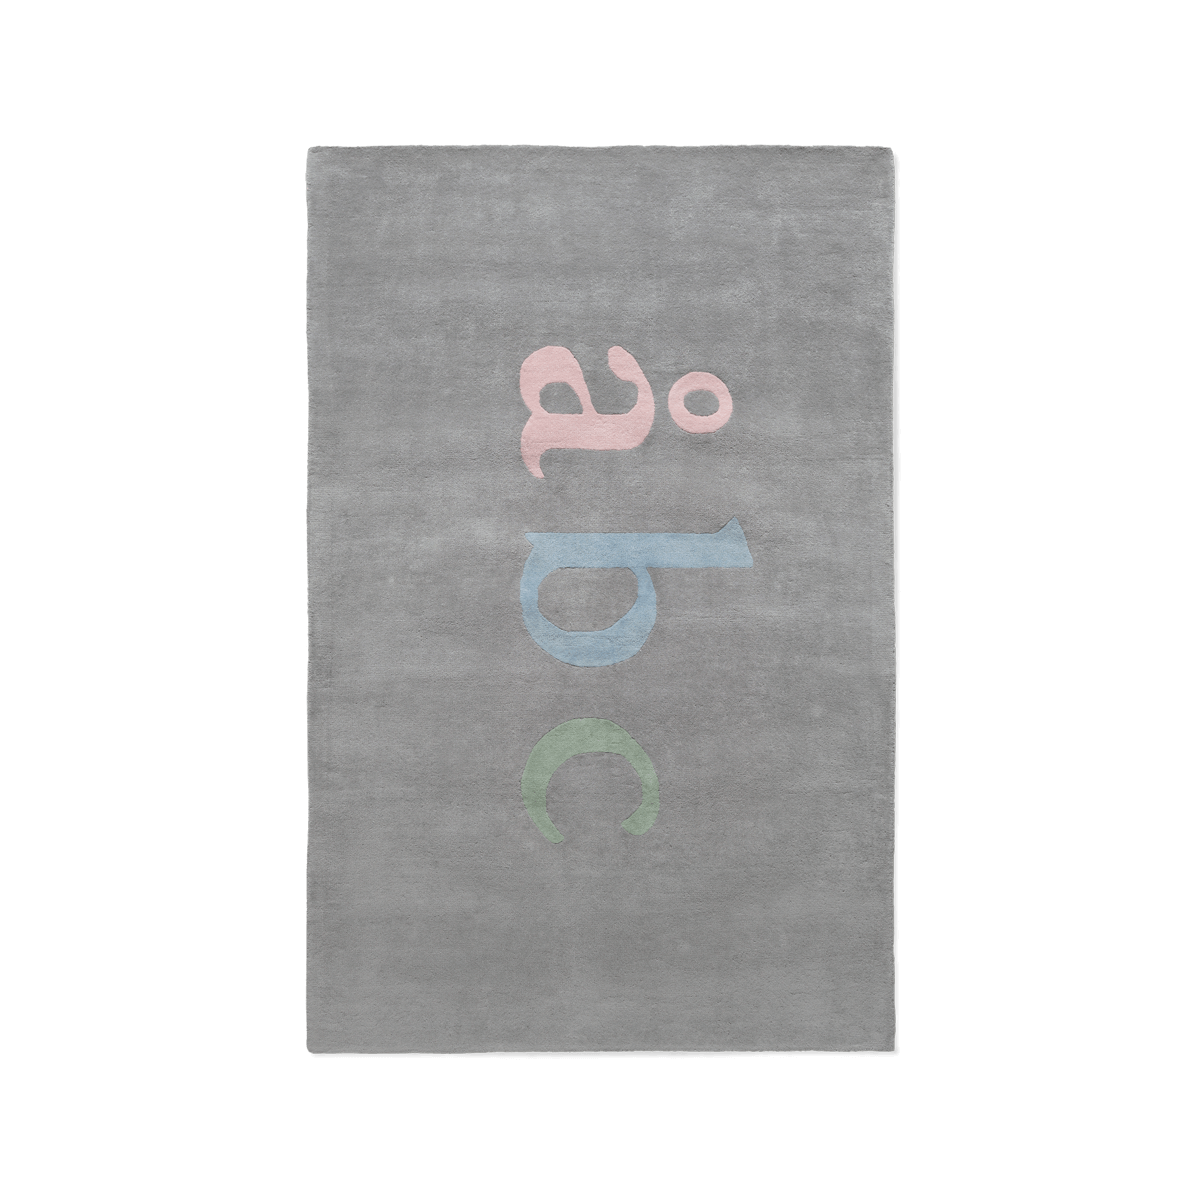 Product image of plush rug Åbc in color multi.